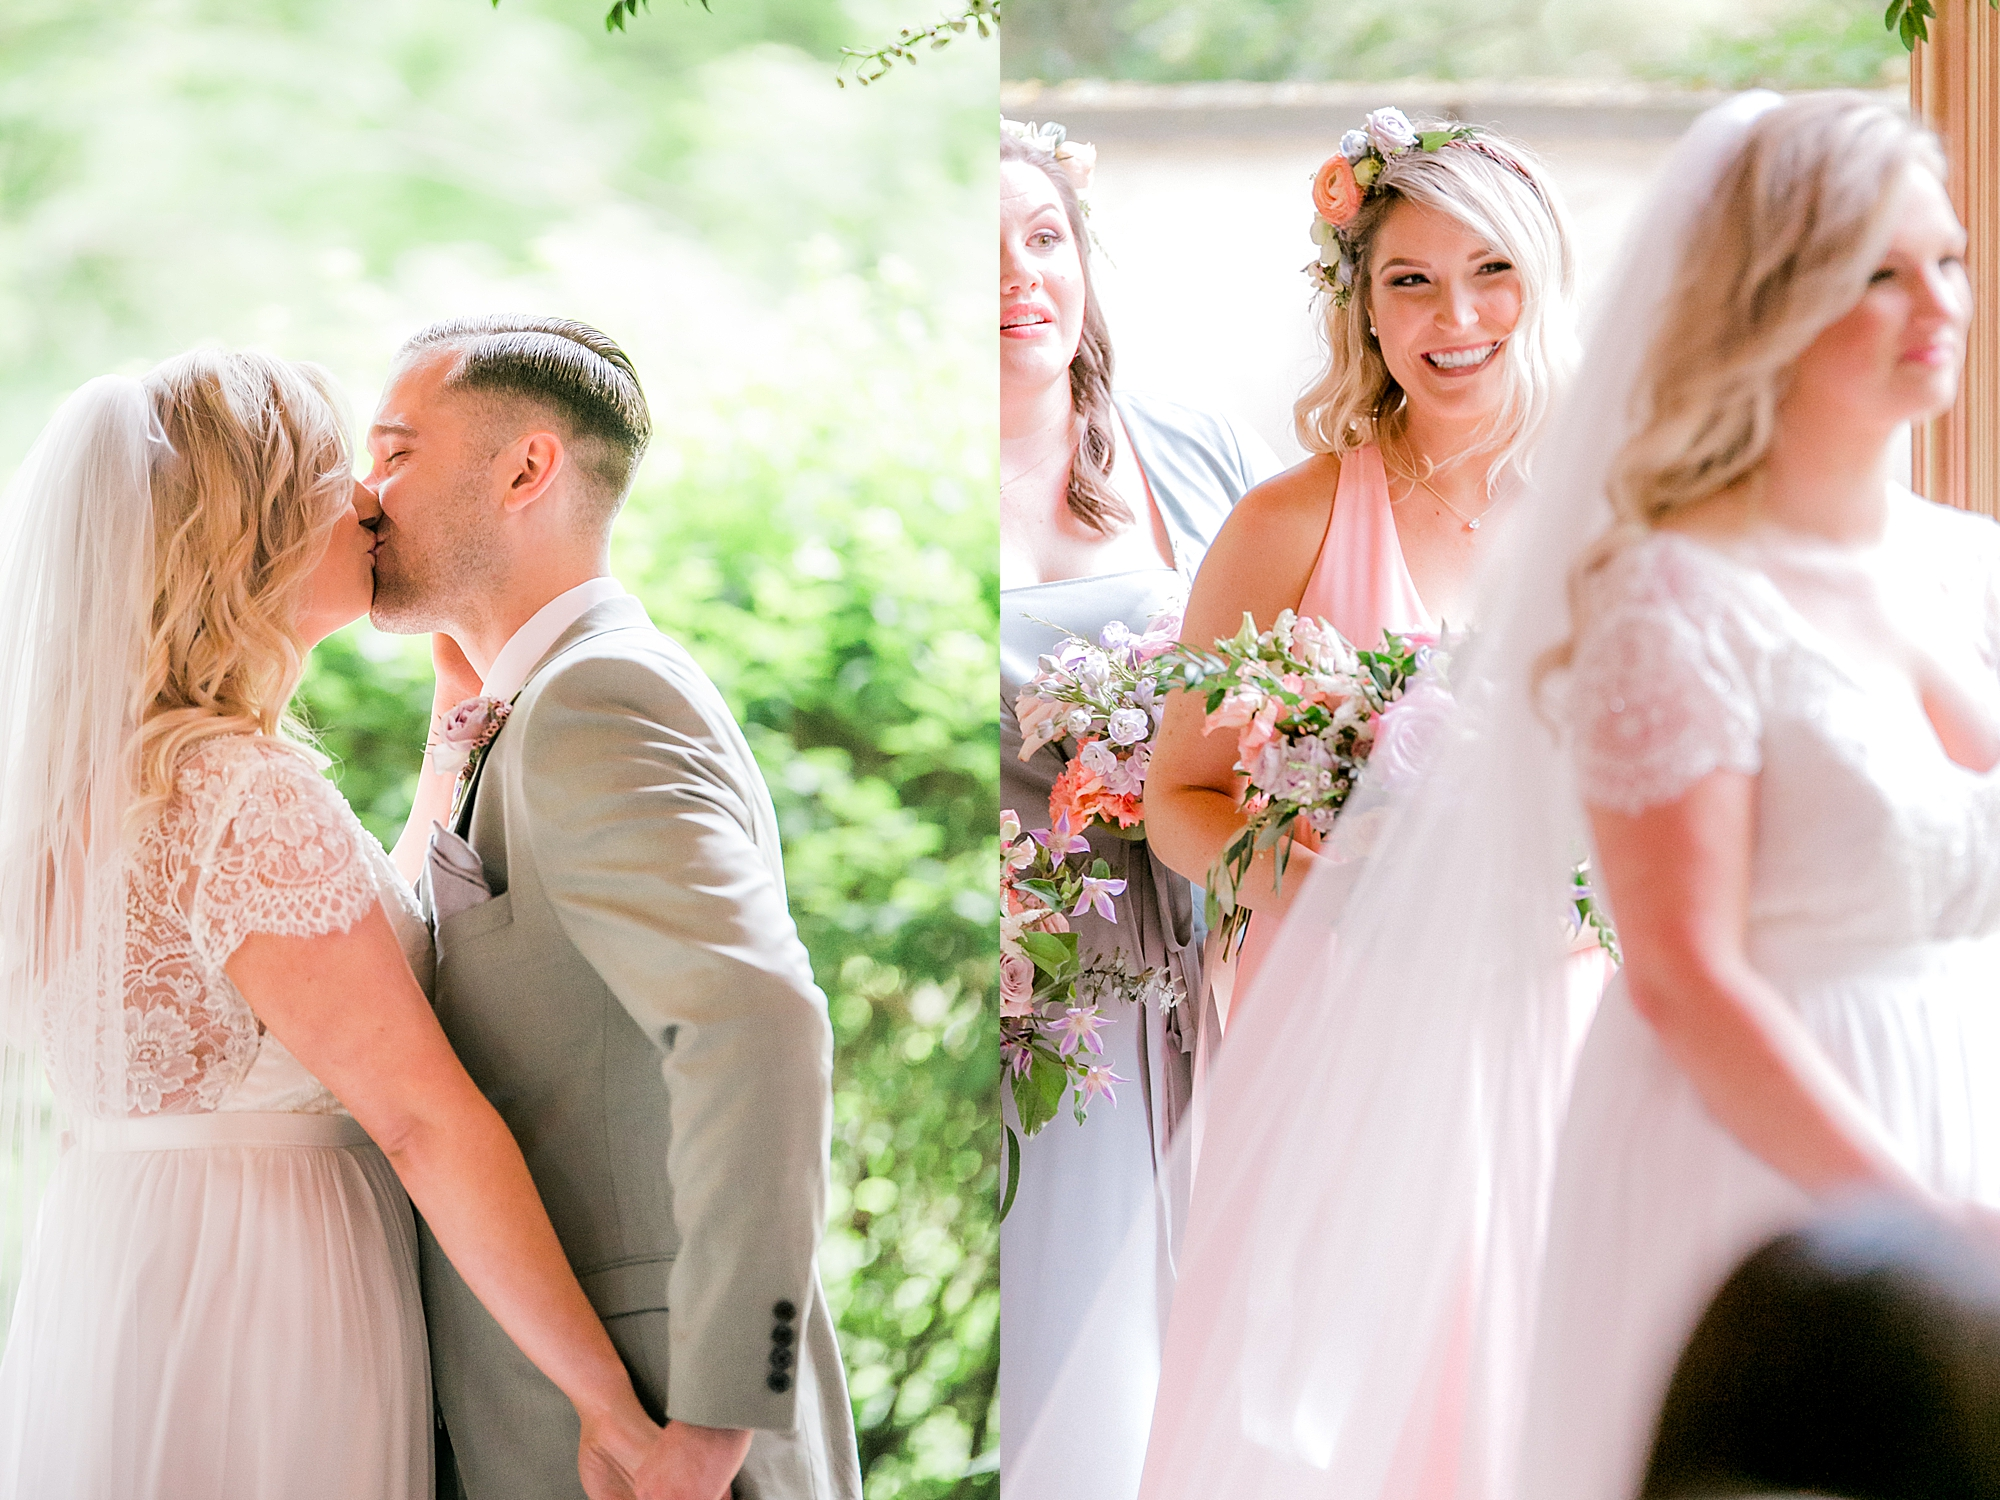 Intimate and Sweet Estate Wedding Photography by Magdalena Studios 0031